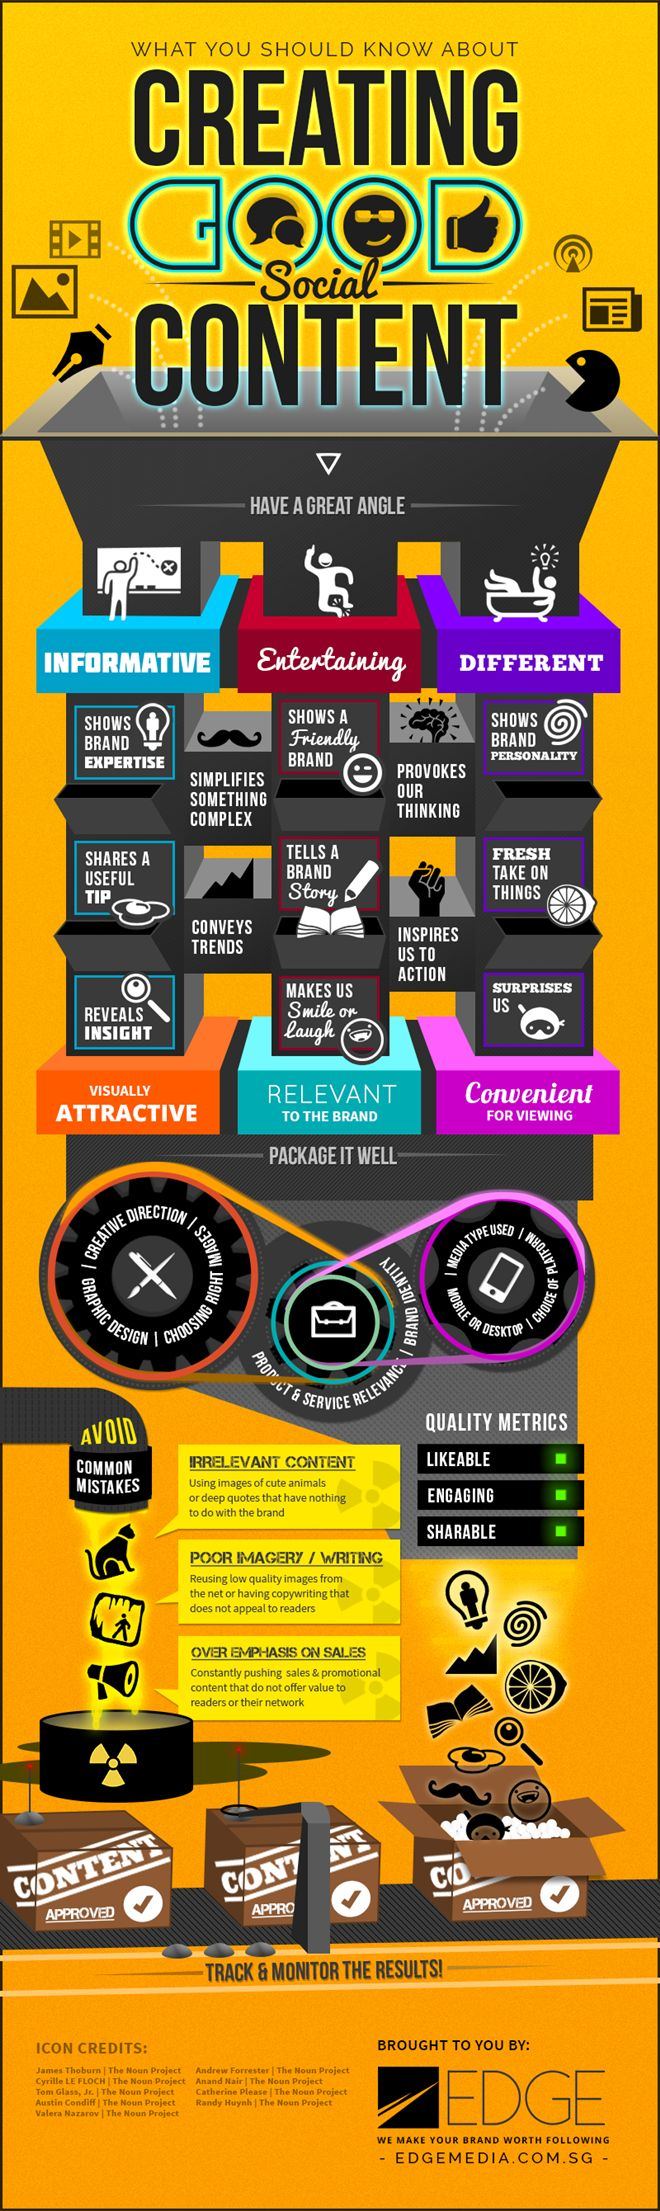 Tips for bloggers, YouTubers and social media enthusiasts. An infographic by Edge Media.